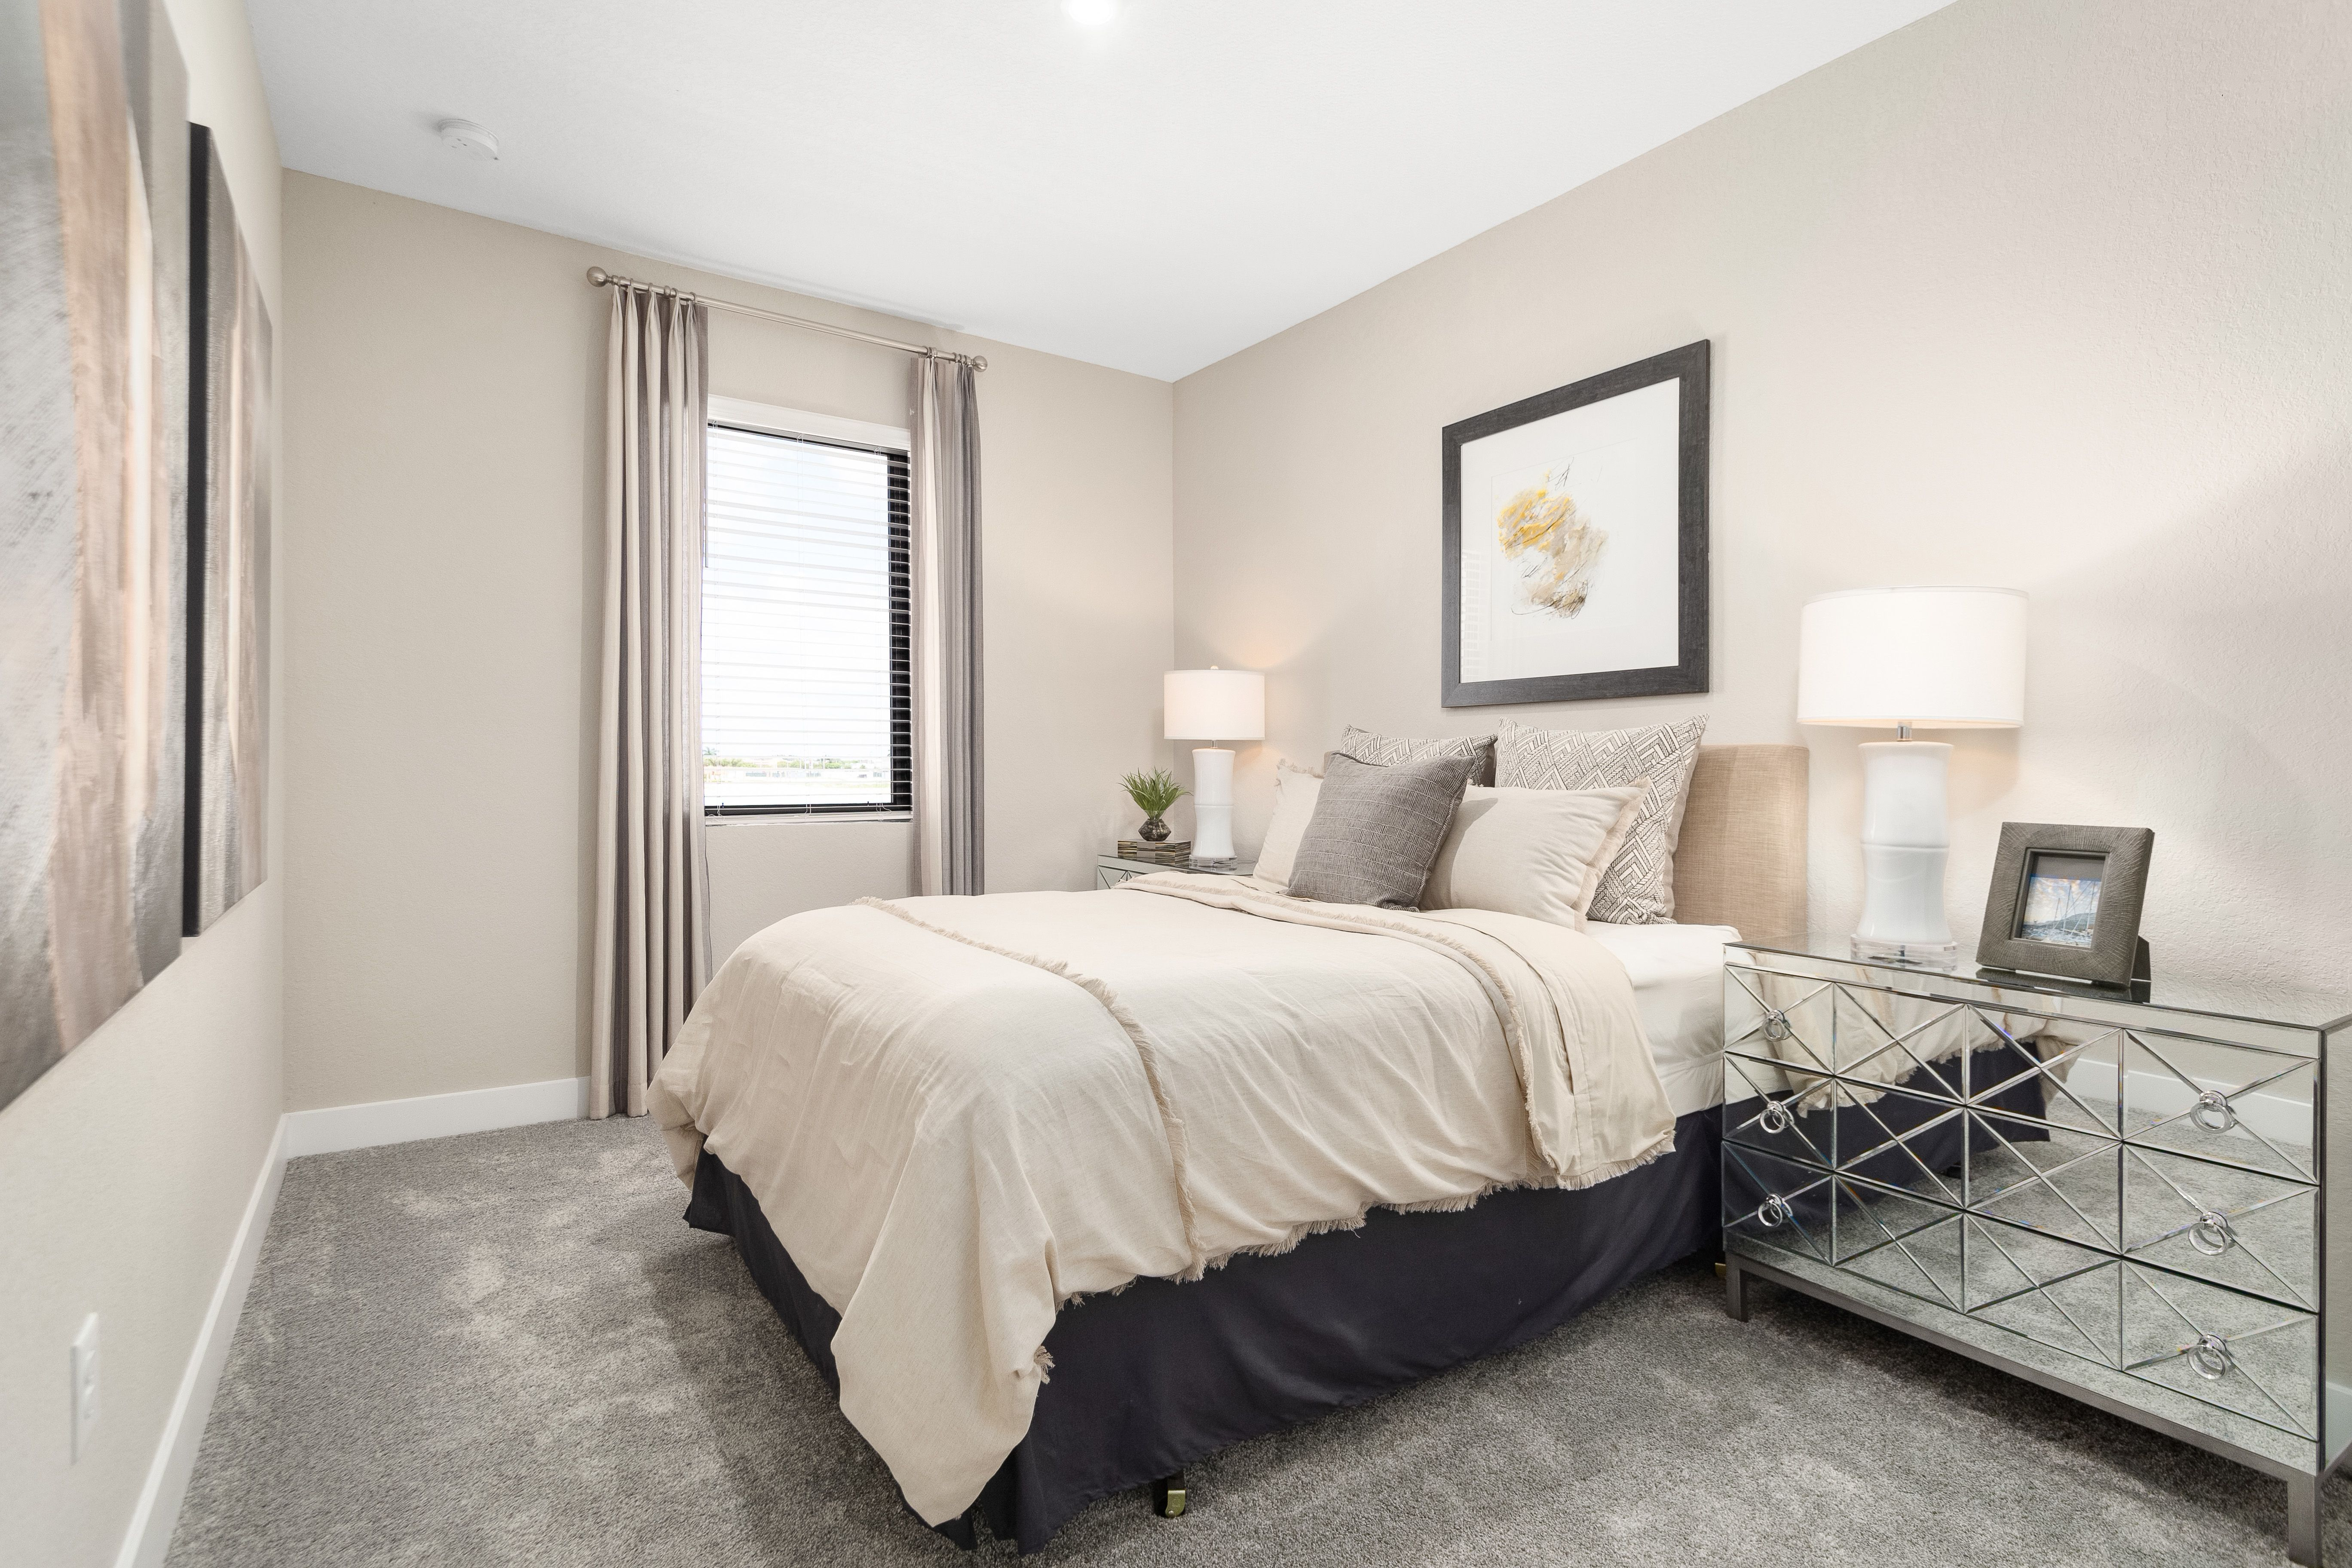 Bedroom featured in the Miro By Ryan Homes in Miami-Dade County, FL